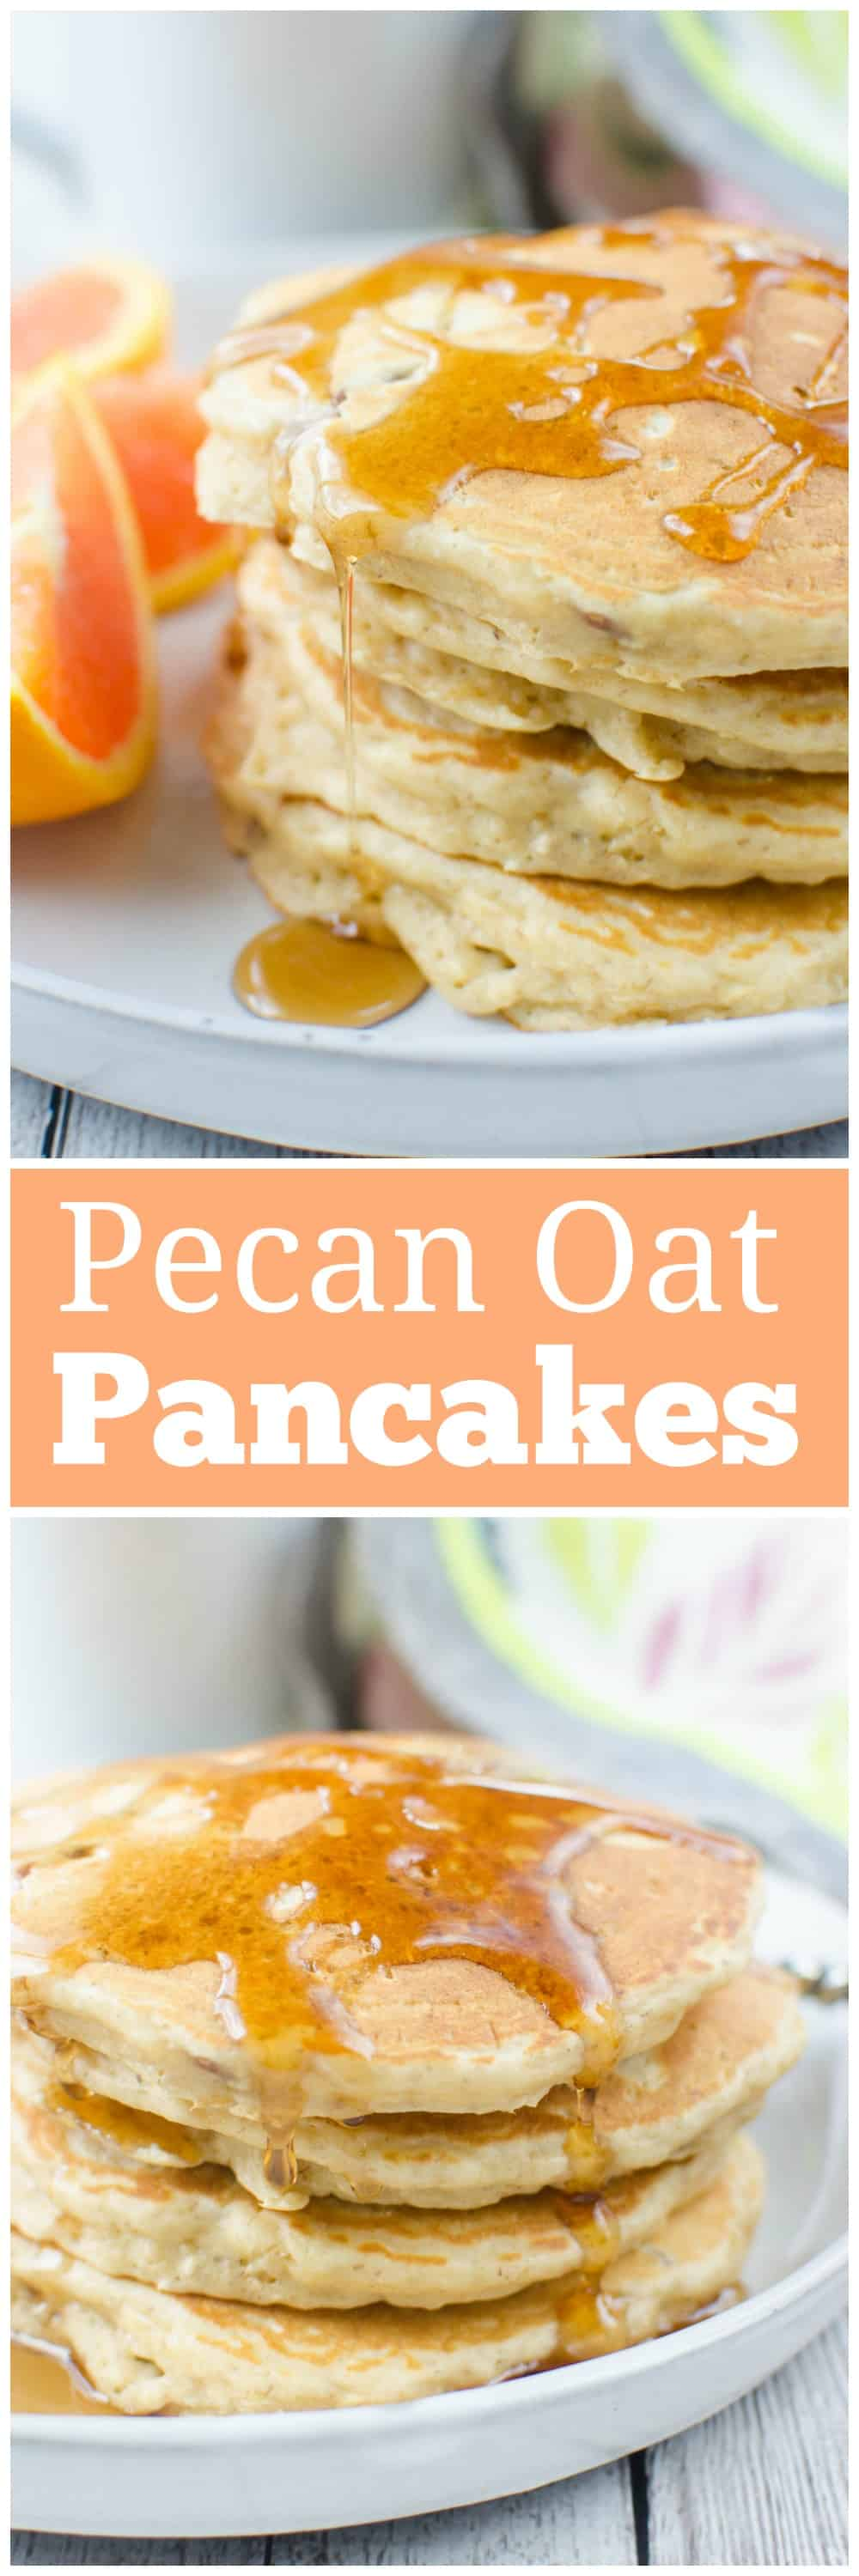 Pecan Oat Pancakes - fluffy pancakes filled with pecans and oats! Delicious, hearty breakfast recipe!